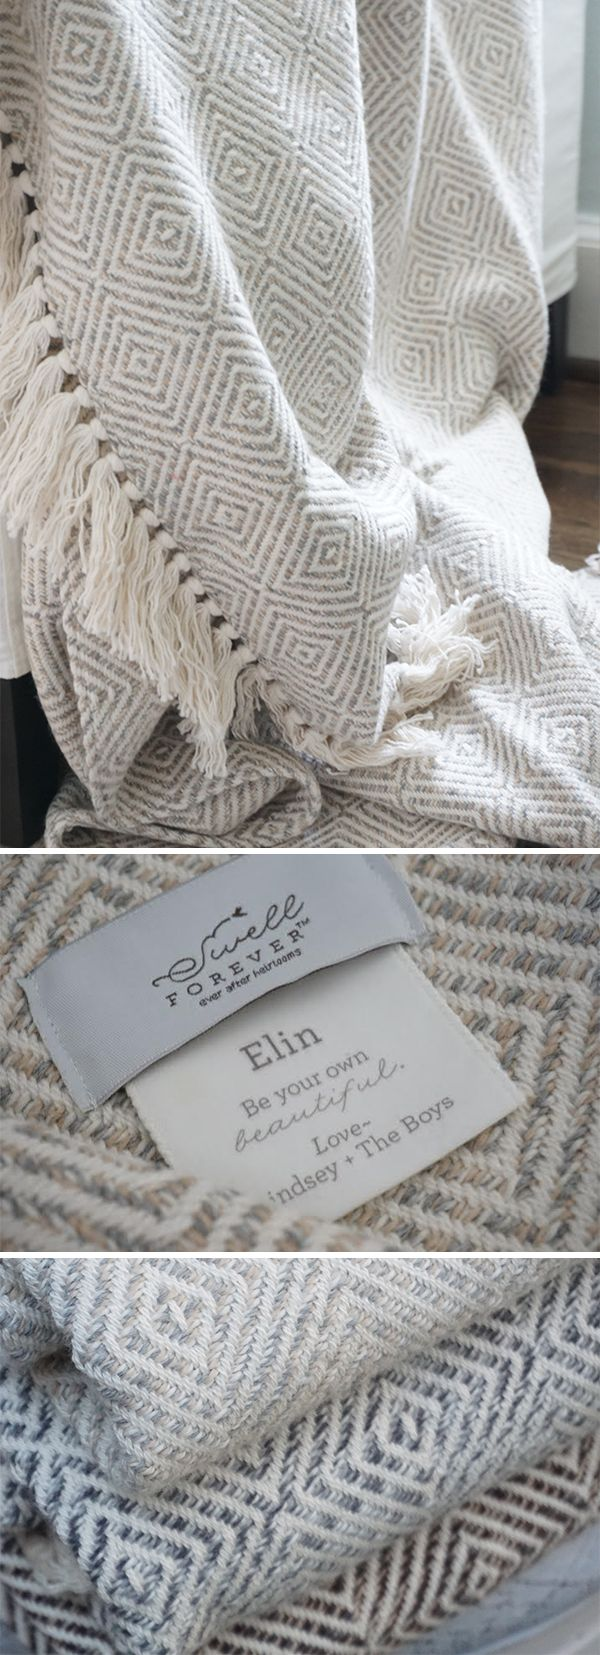 The Alpaca Forever Blanket {throw} Collection from Swell Forever. American Made with unique personalized message tags. Comes in 5 colorways. Diamond pattern throws perfect for wedding, bridesmaid, mother of the groom, mother of the bride, inlaw, housewarming, corporate, birthday, best friend gifting. Your gift supports adoption. Valentine and mother's day gift ideas.